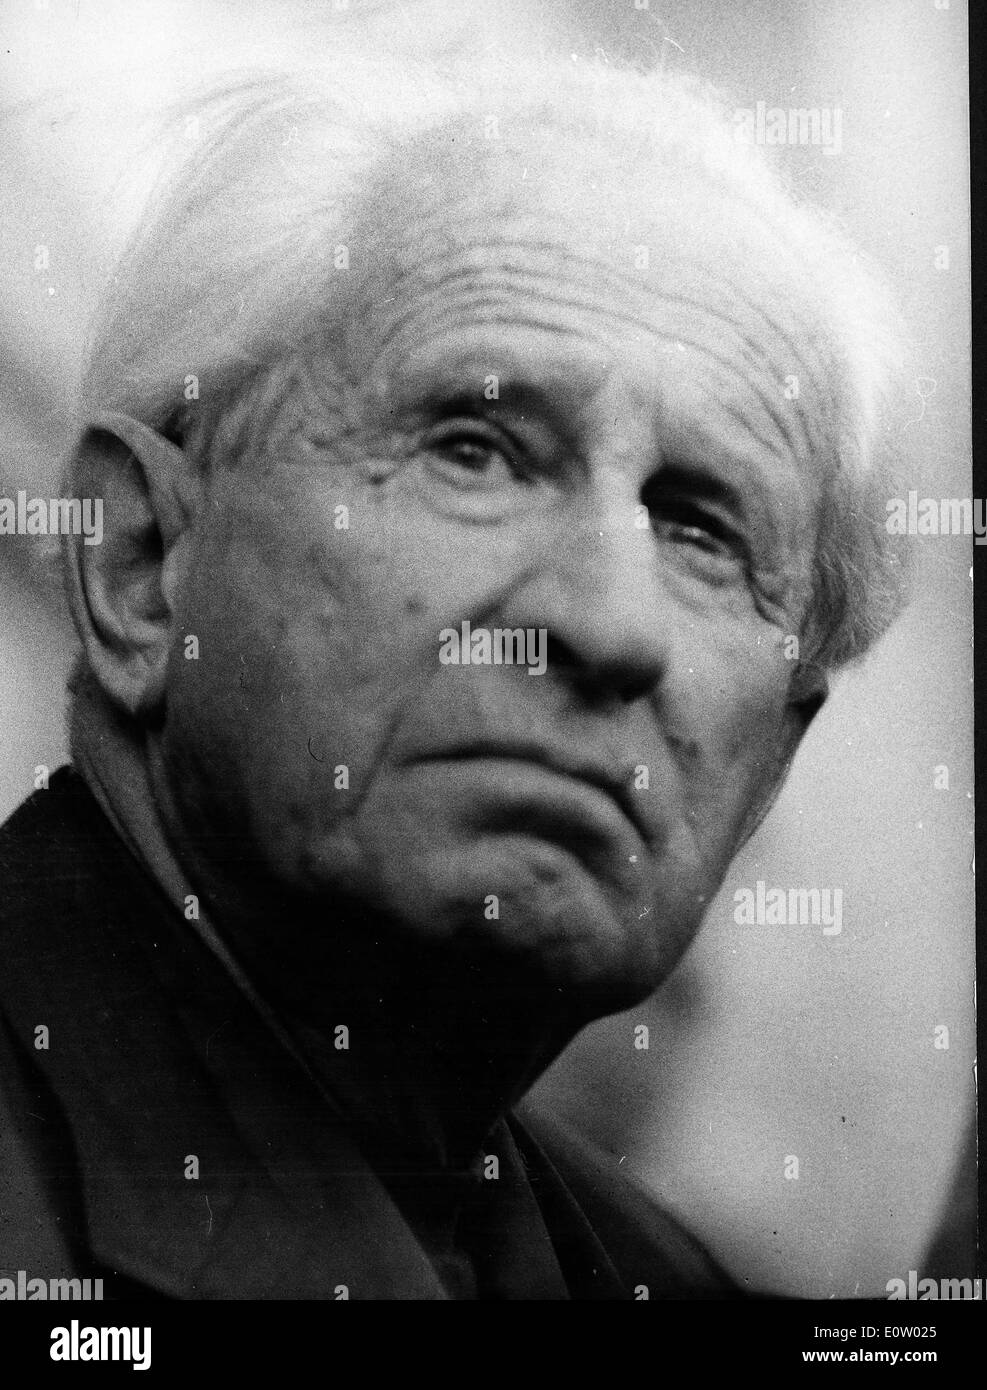 Close-up of Raymond Marcellin at an old age - Stock Image